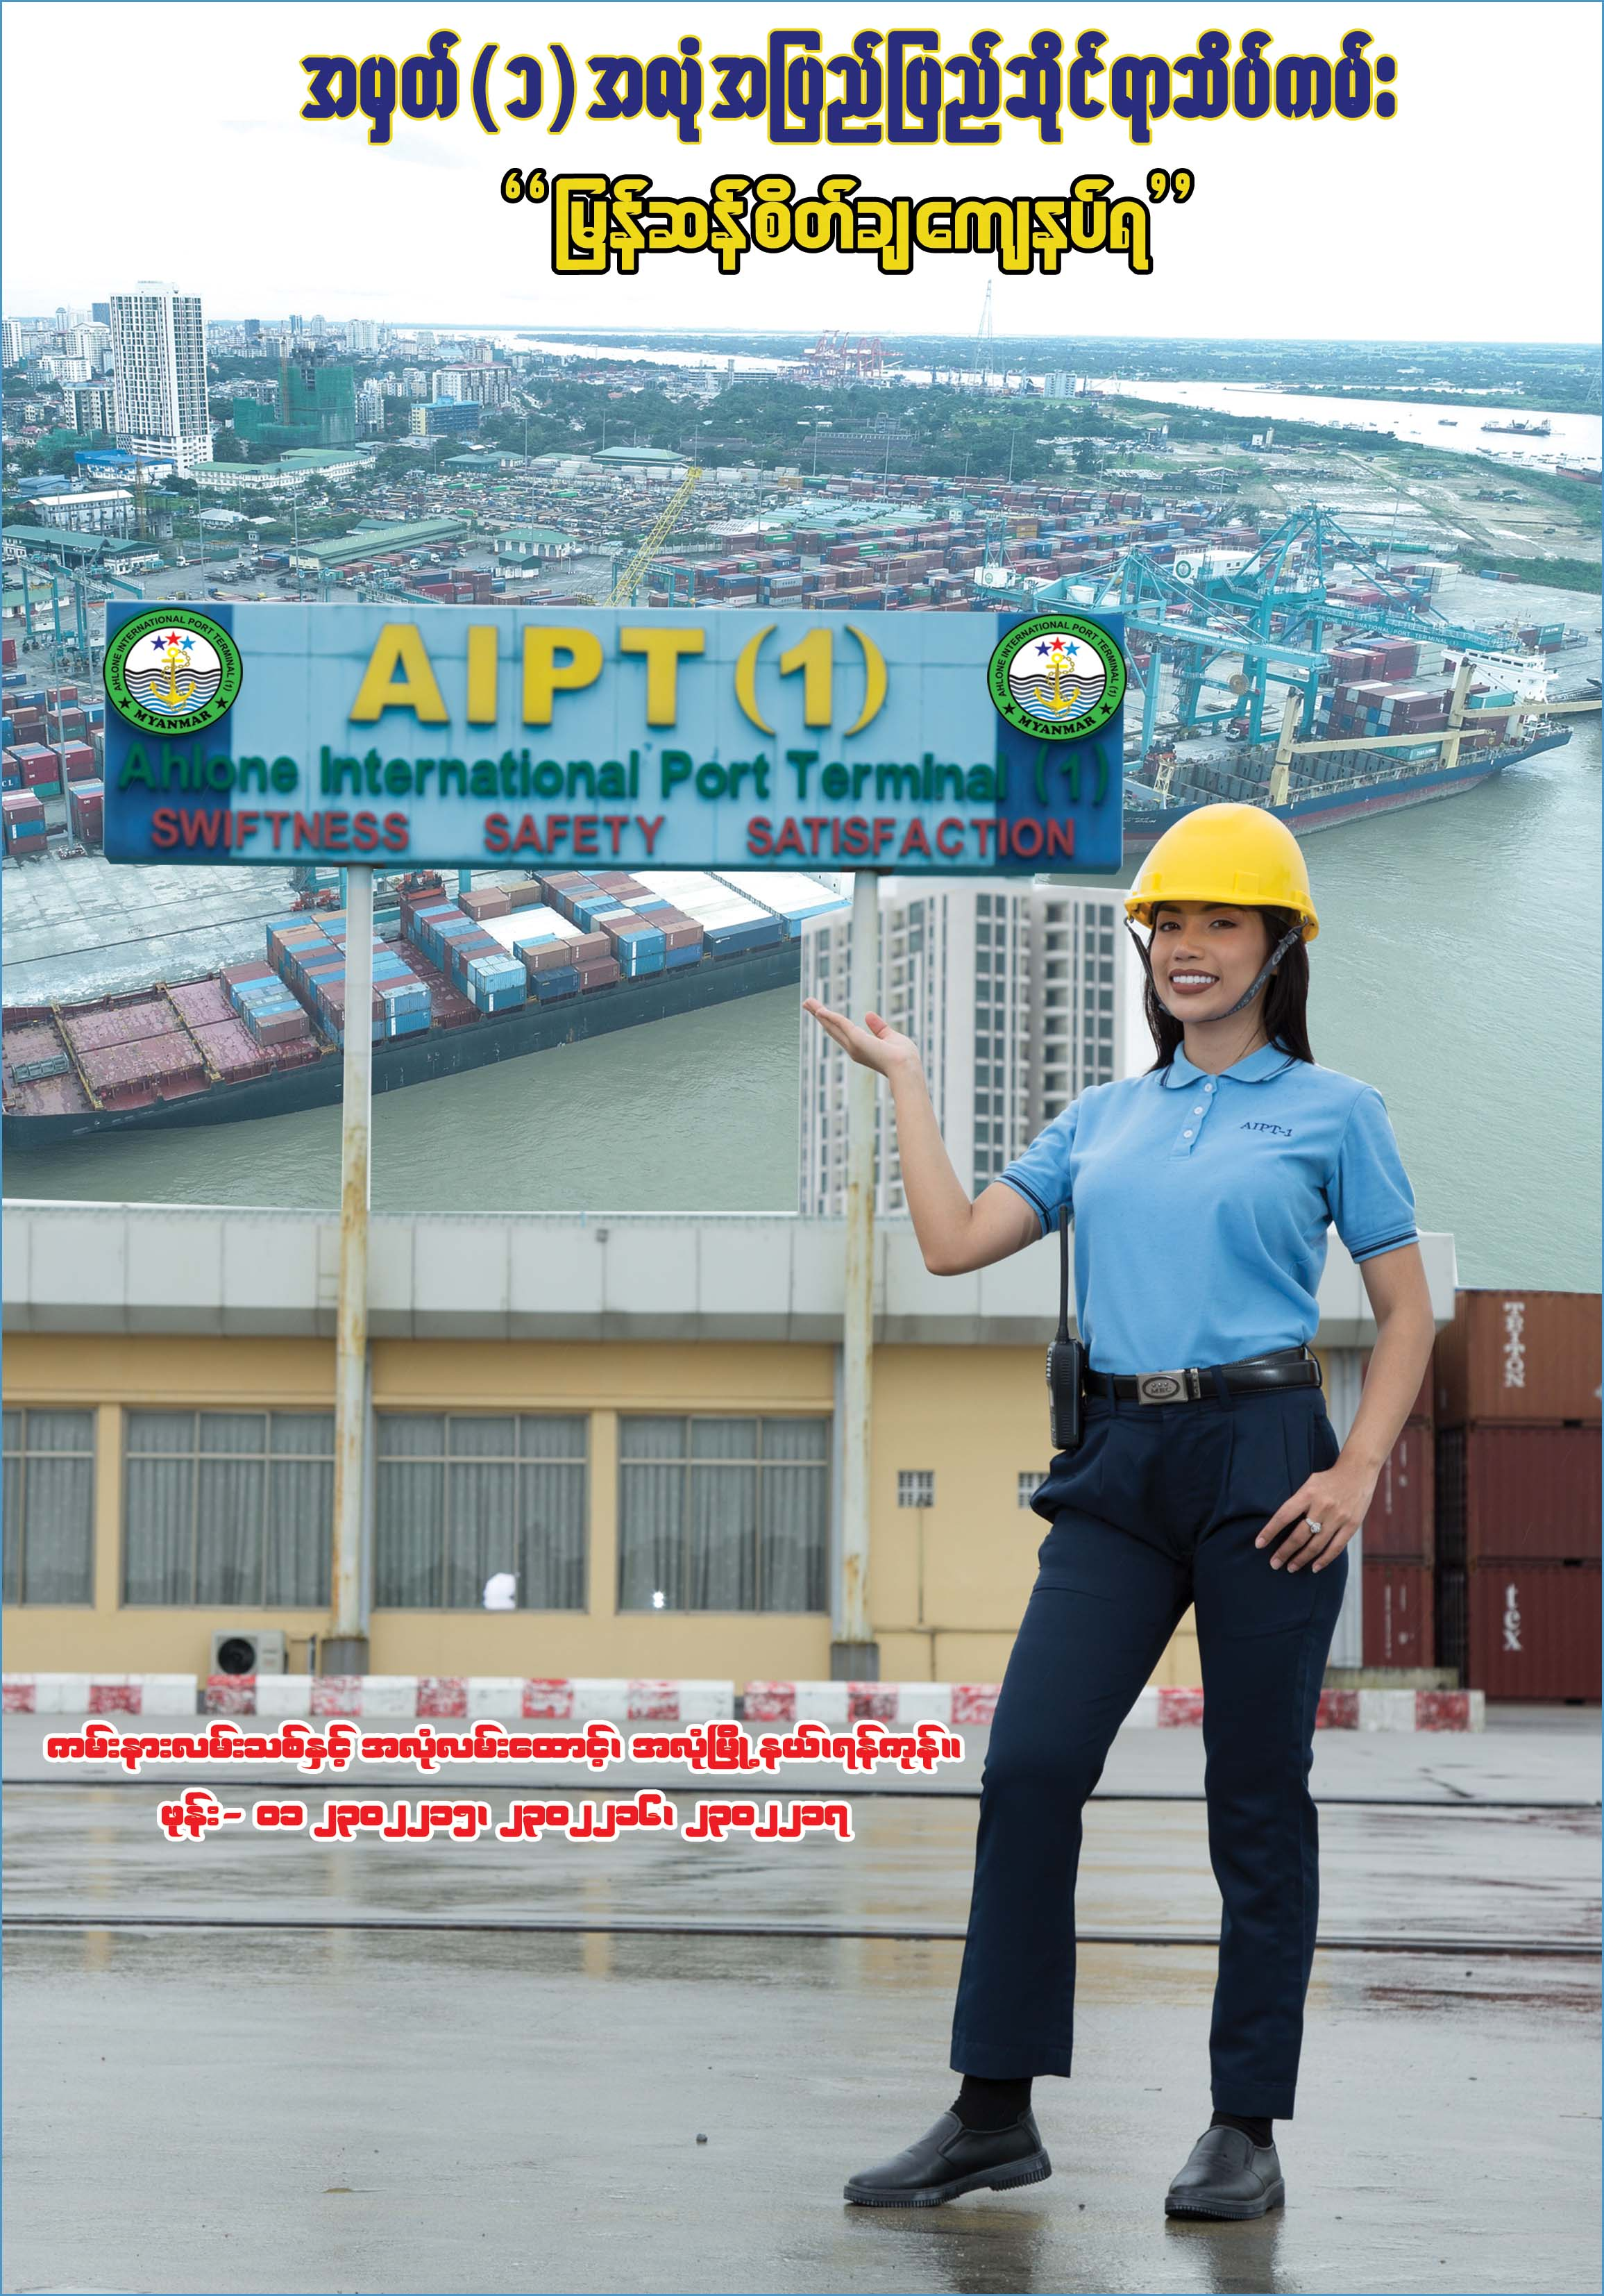 Ahlone International Port Terminal (1) (AIPT)